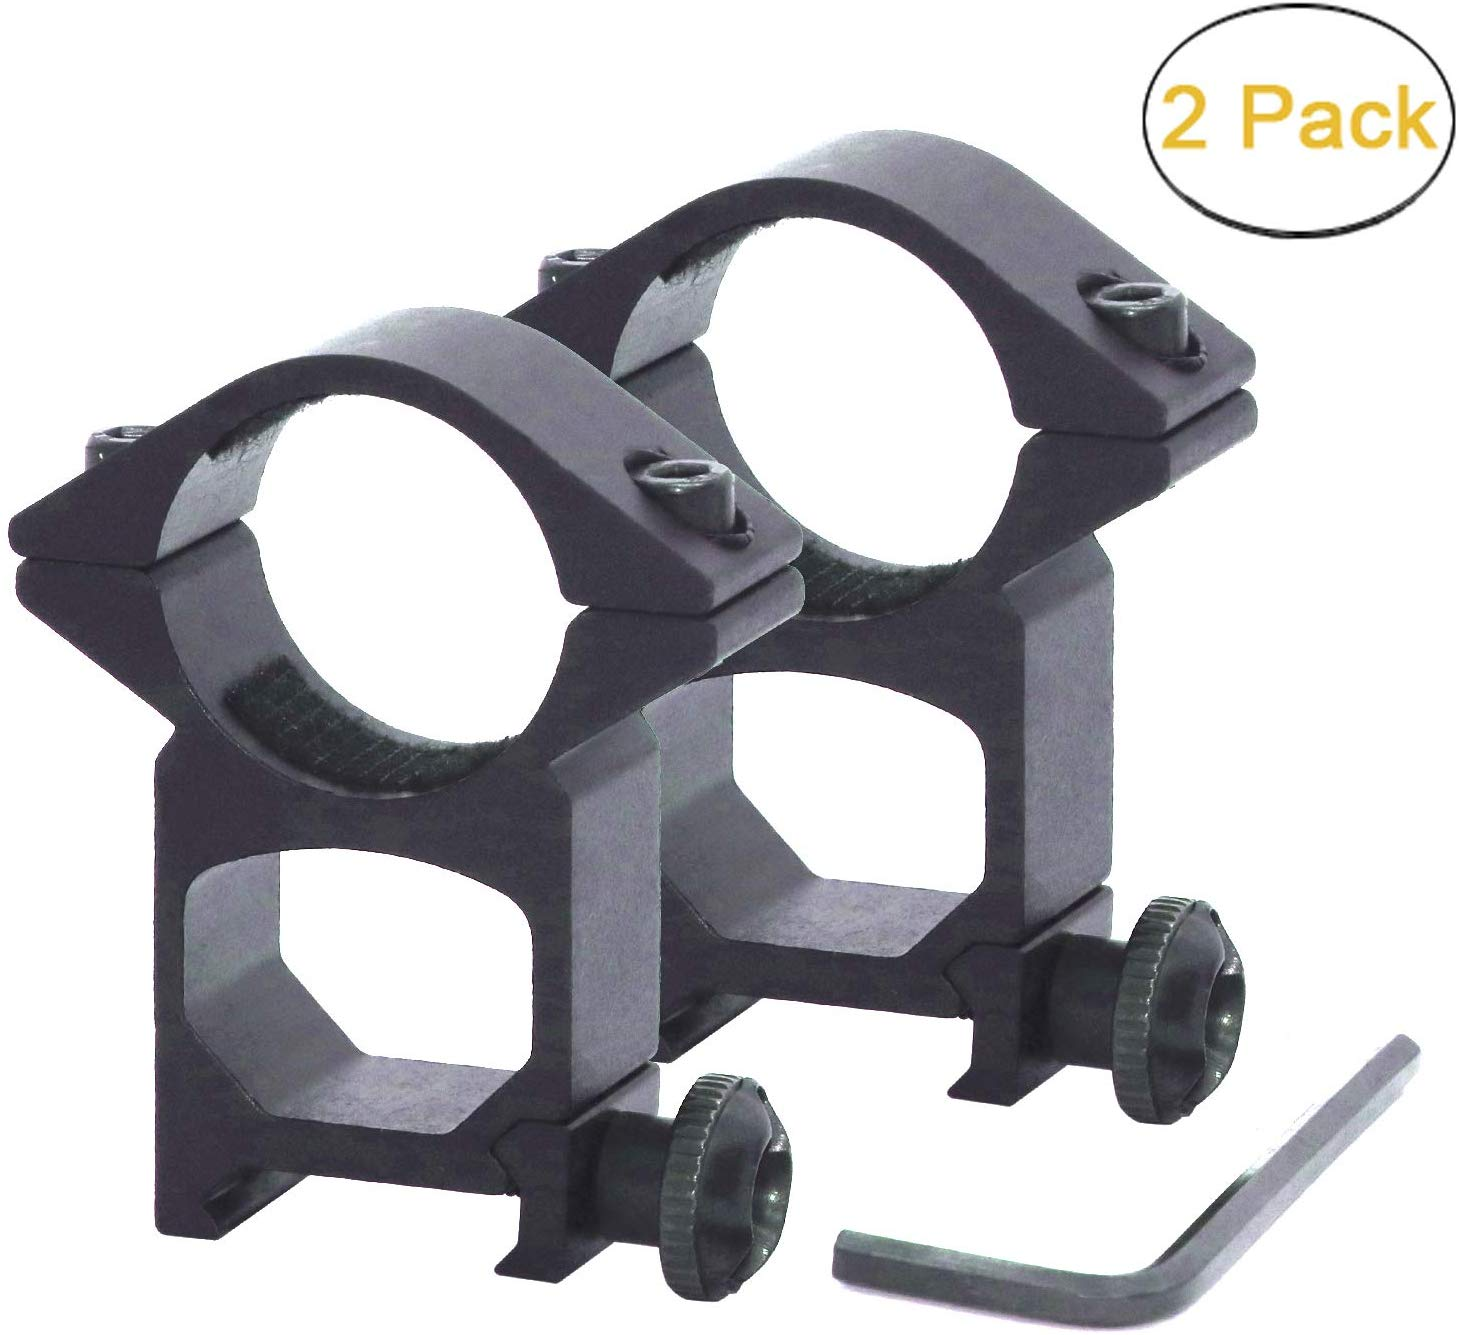 2 Pcs Rifle Hunting Scope Ring Mounts 1inch High Profile Scope Mounts Rings For Picatinny Weaver Rail